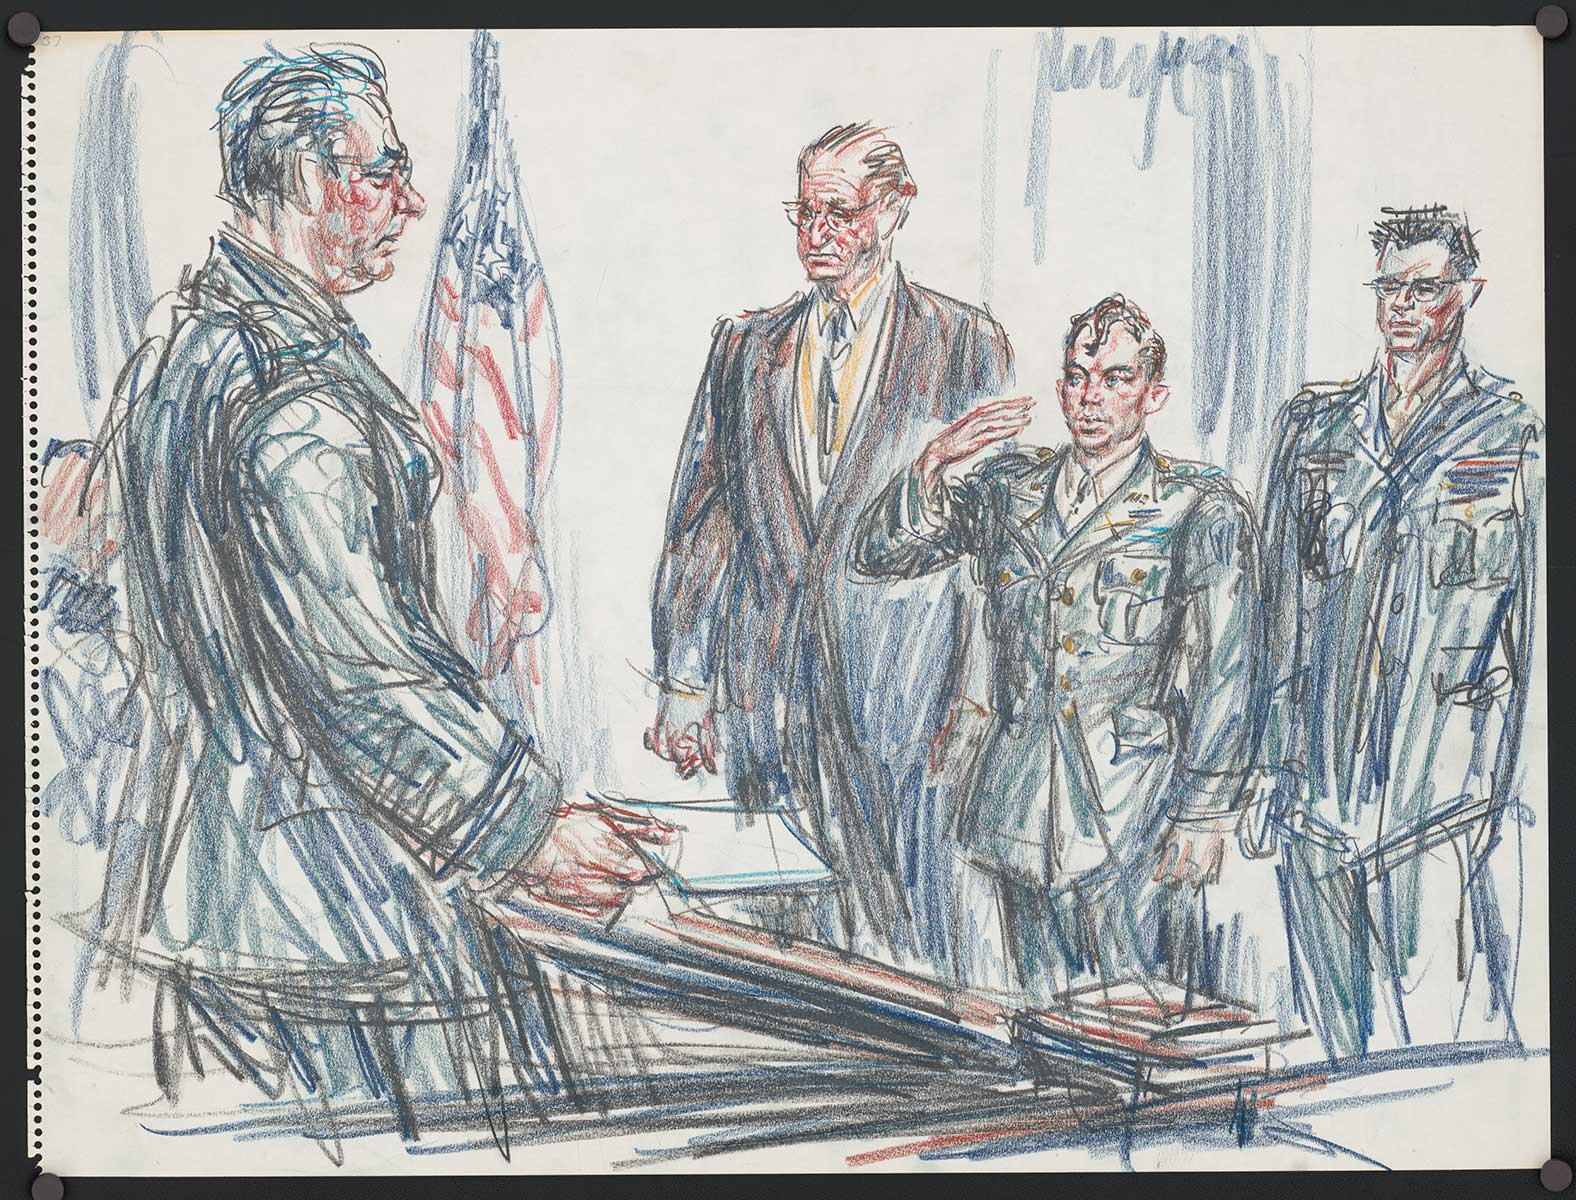 Caricature of William Calley Jr. in court, surrounded by lawyers and military officials.